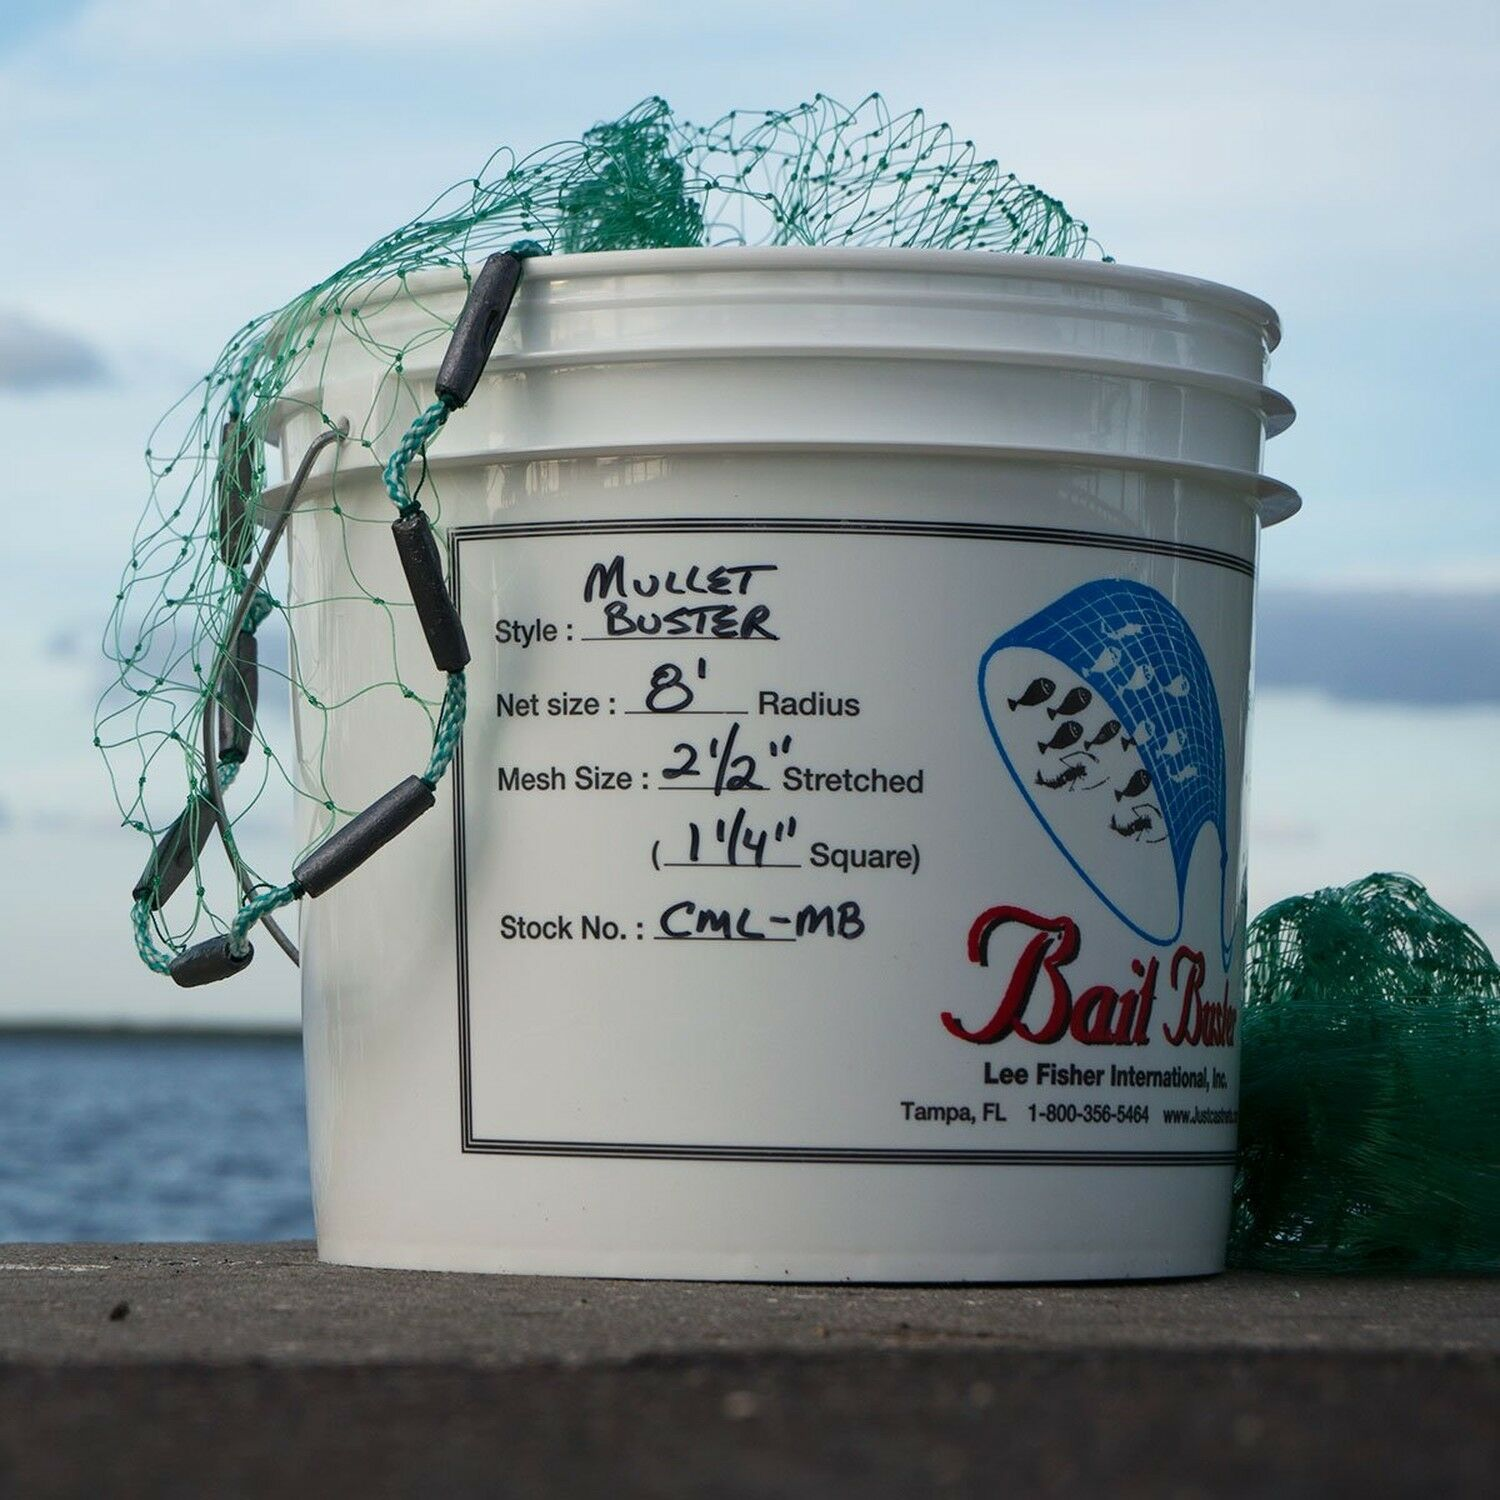 Bait Buster Mullet Cast  Net with 1-1 4  Squared Mesh - 12 Foot Radius  hot sale online